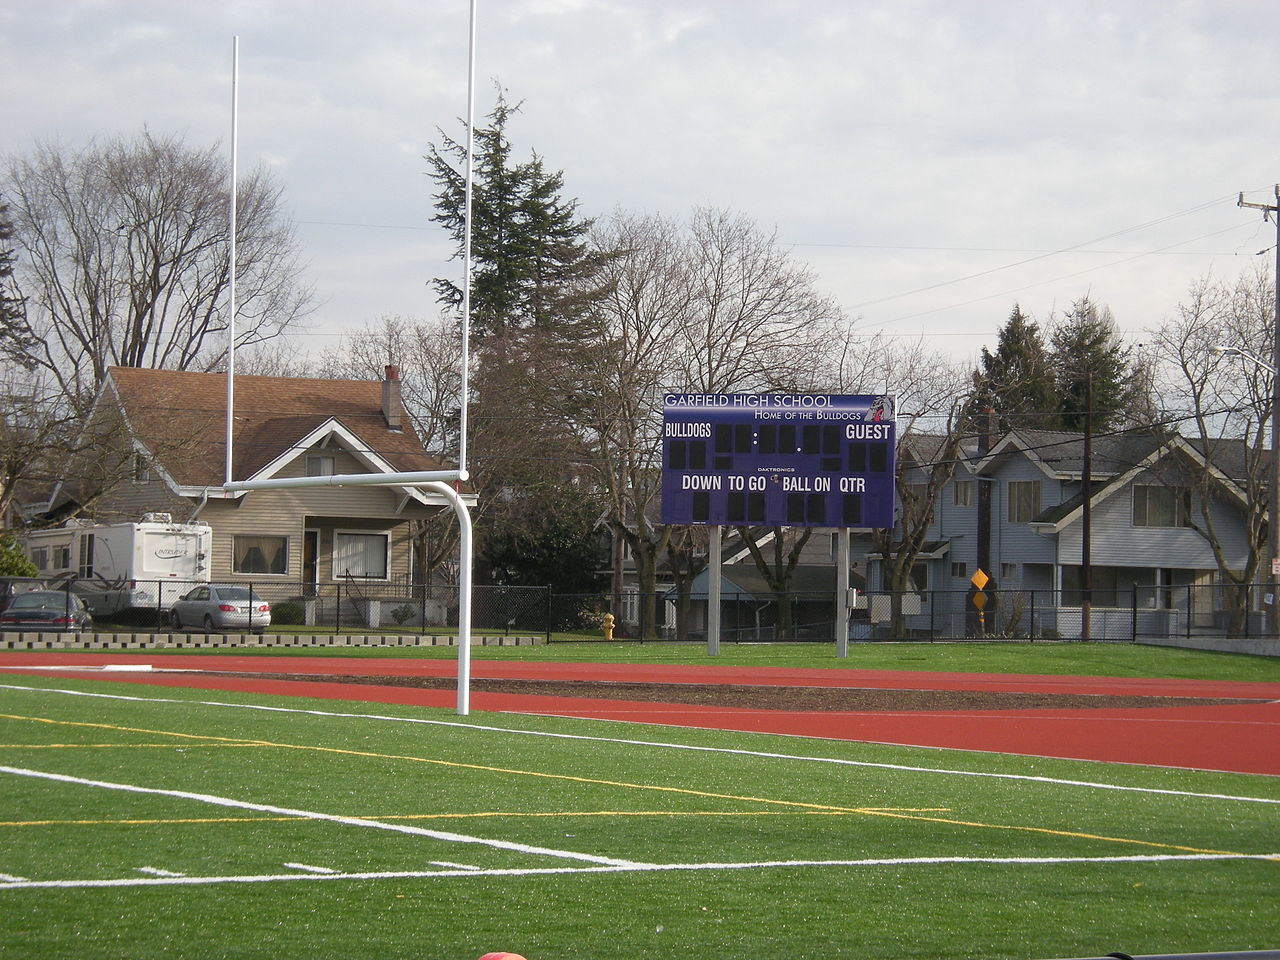 Latest Twist In Garfield Inquest Calls Recruiting Story Into Question South Seattle Emerald